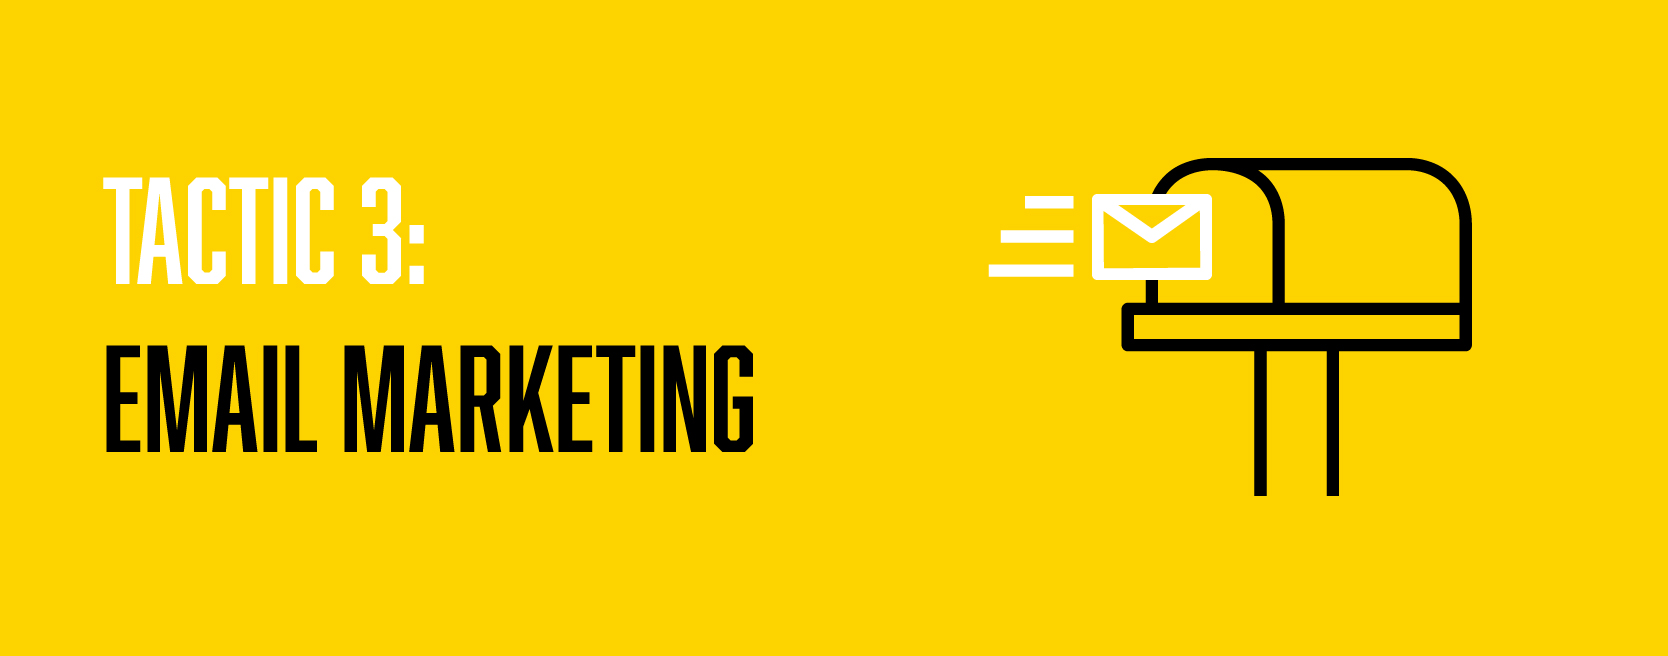 Email Marketing-02